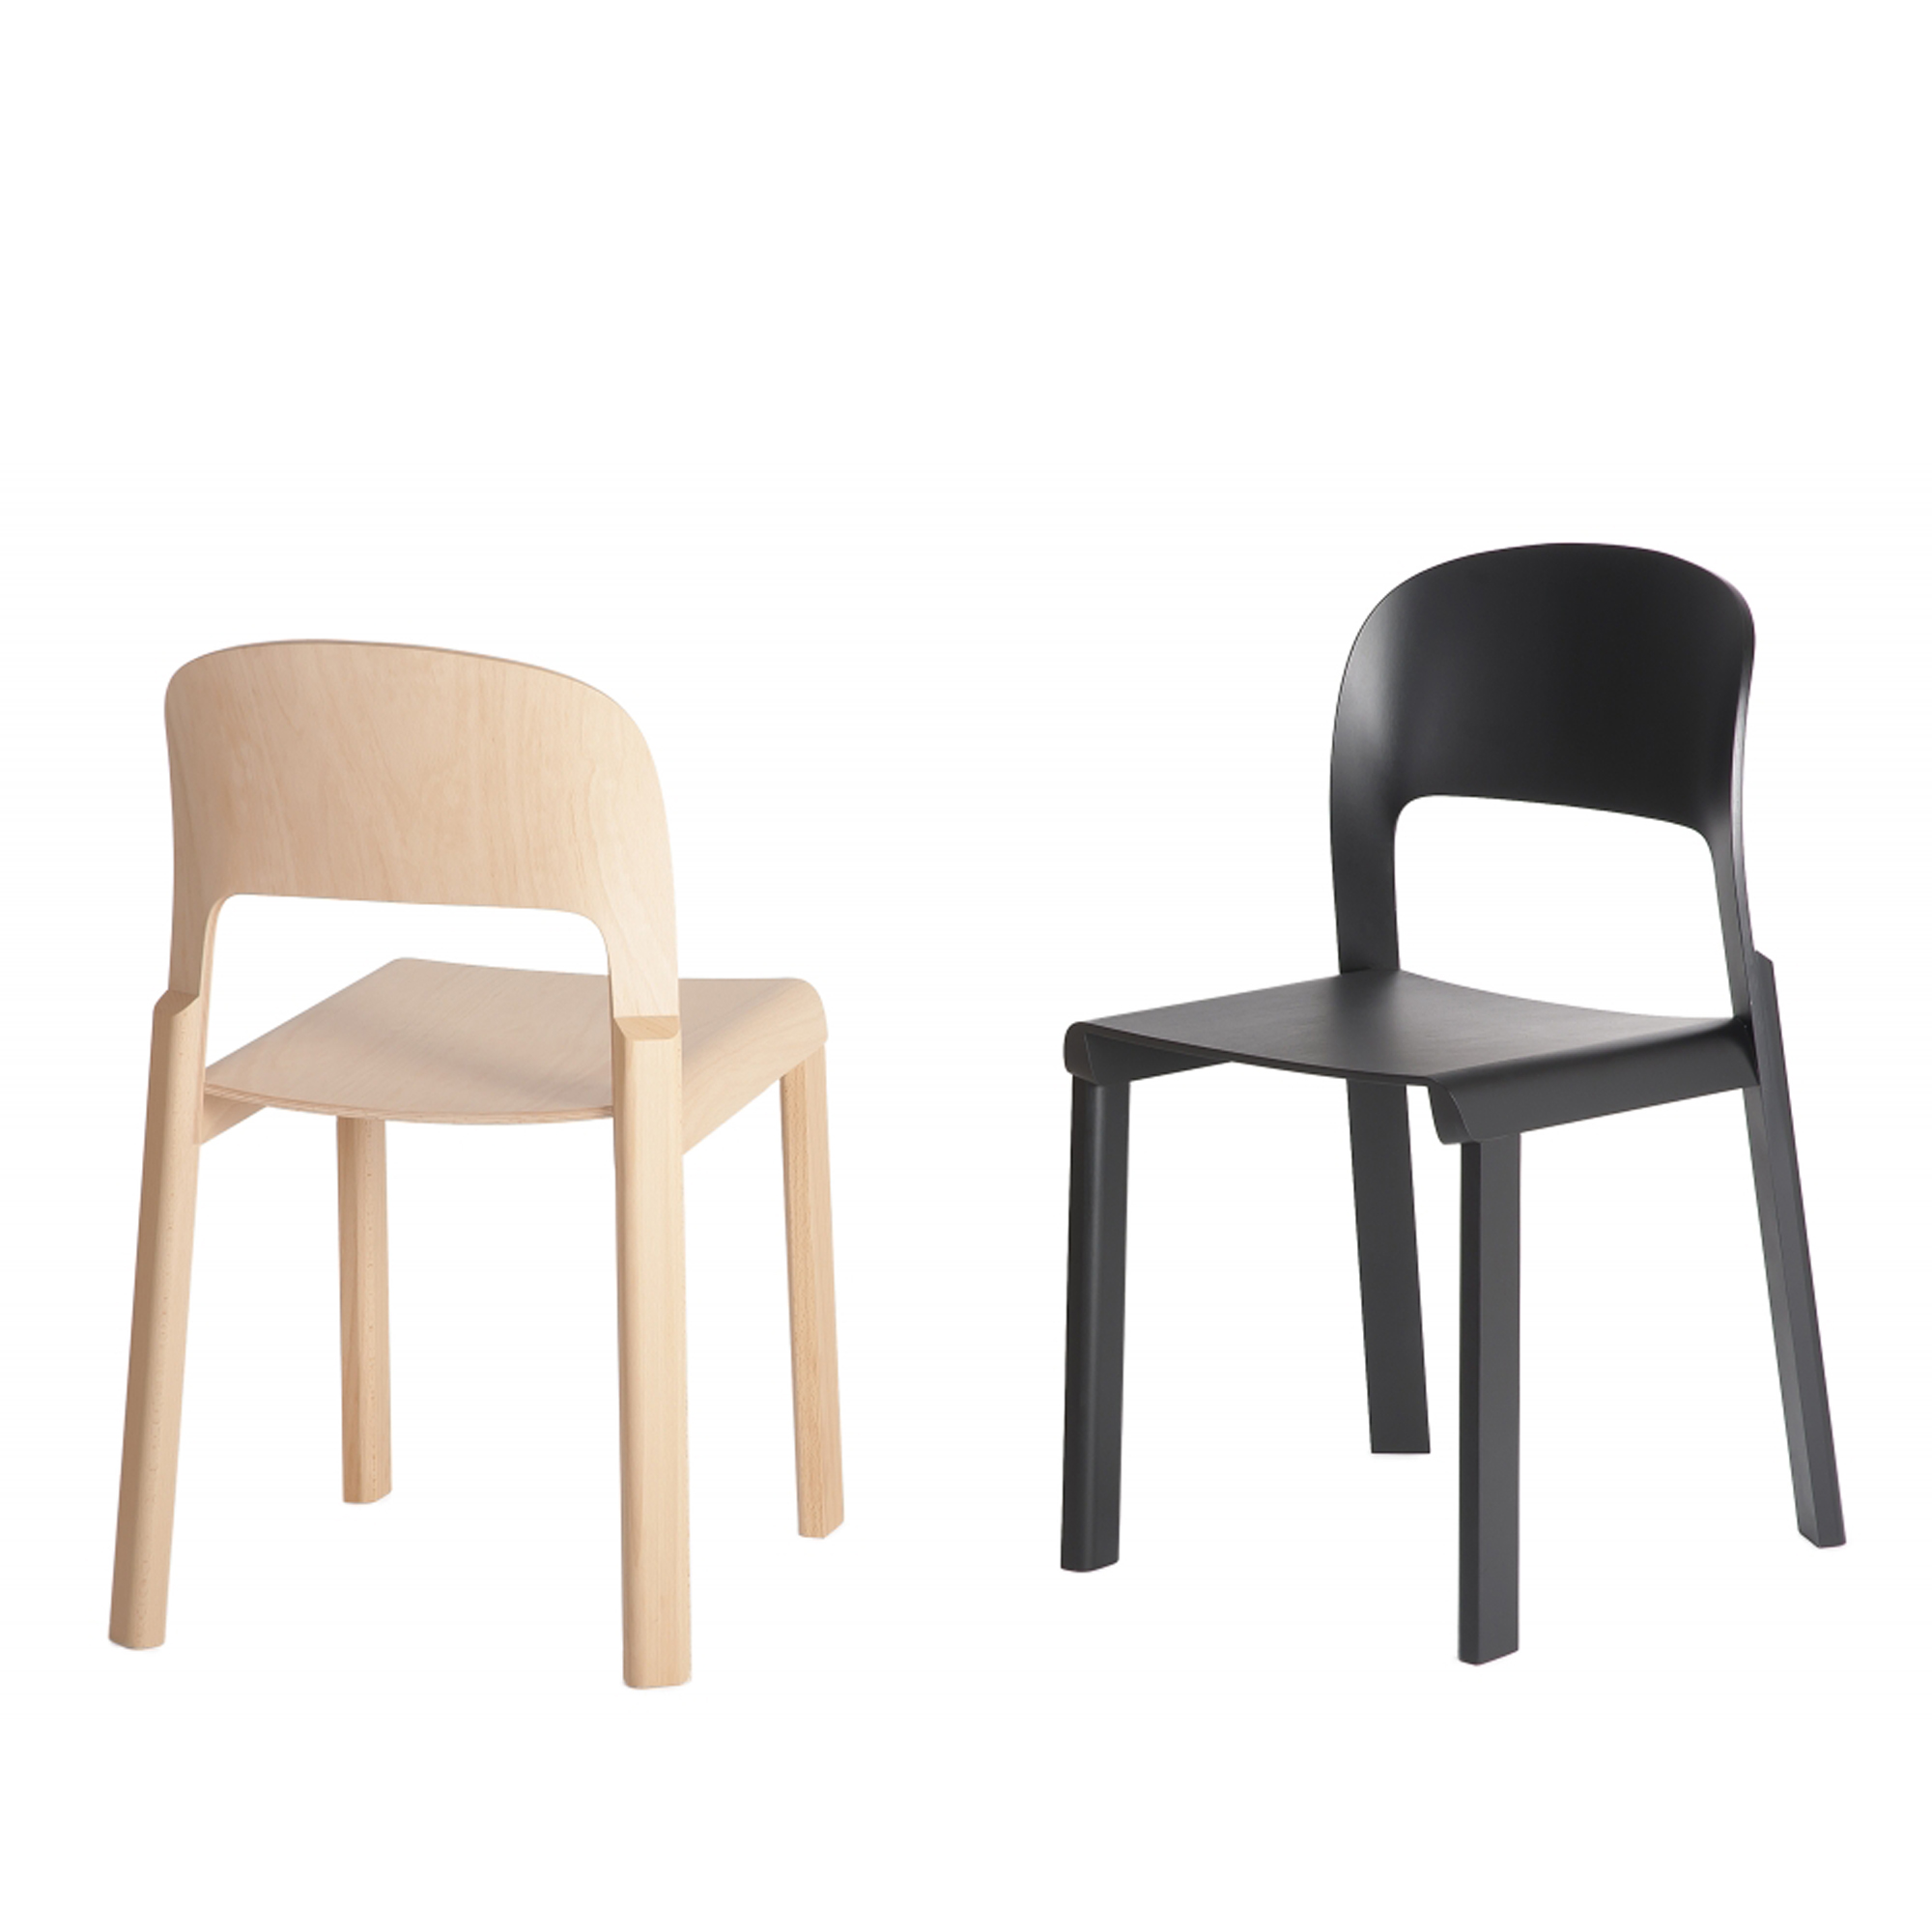 Juppa Chairs by Jörg Boner for Atelier Pfister